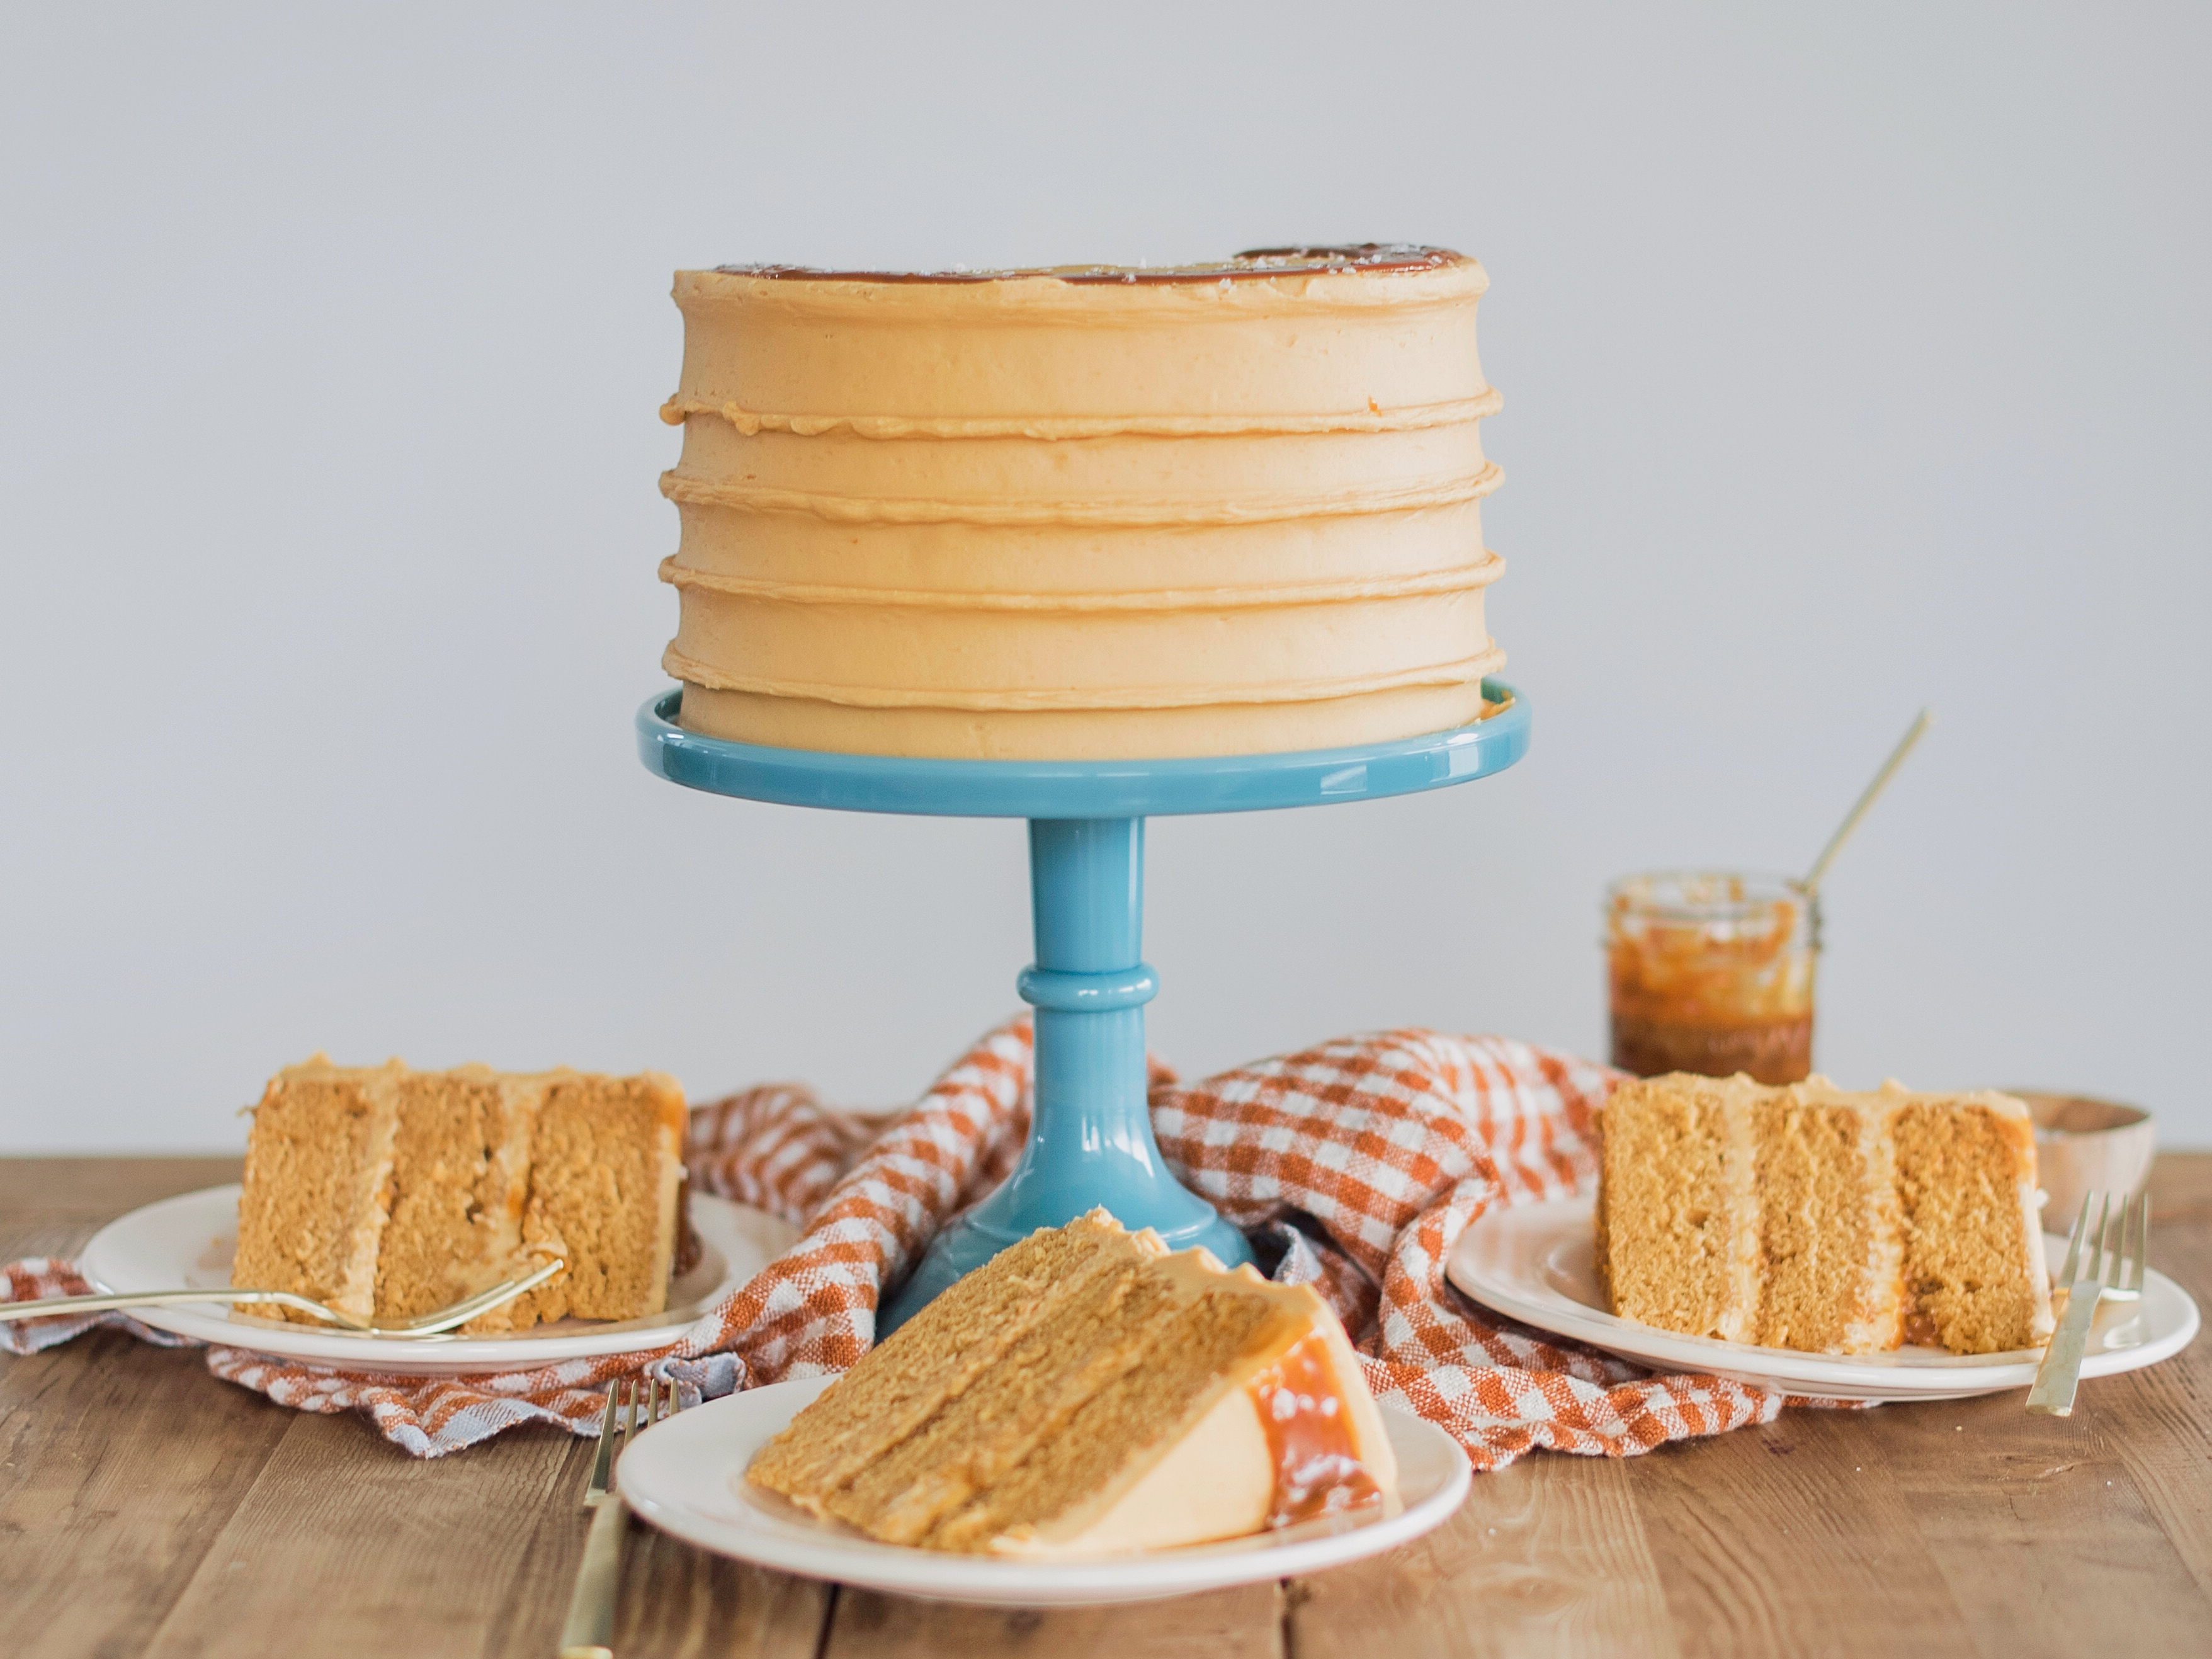 Caramel Cake - caramel cake layers with caramel drizzle and caramel buttercream. #cakebycourtney #caramelcake #cakerecipe #caramelrecipe #caramel #fallcake